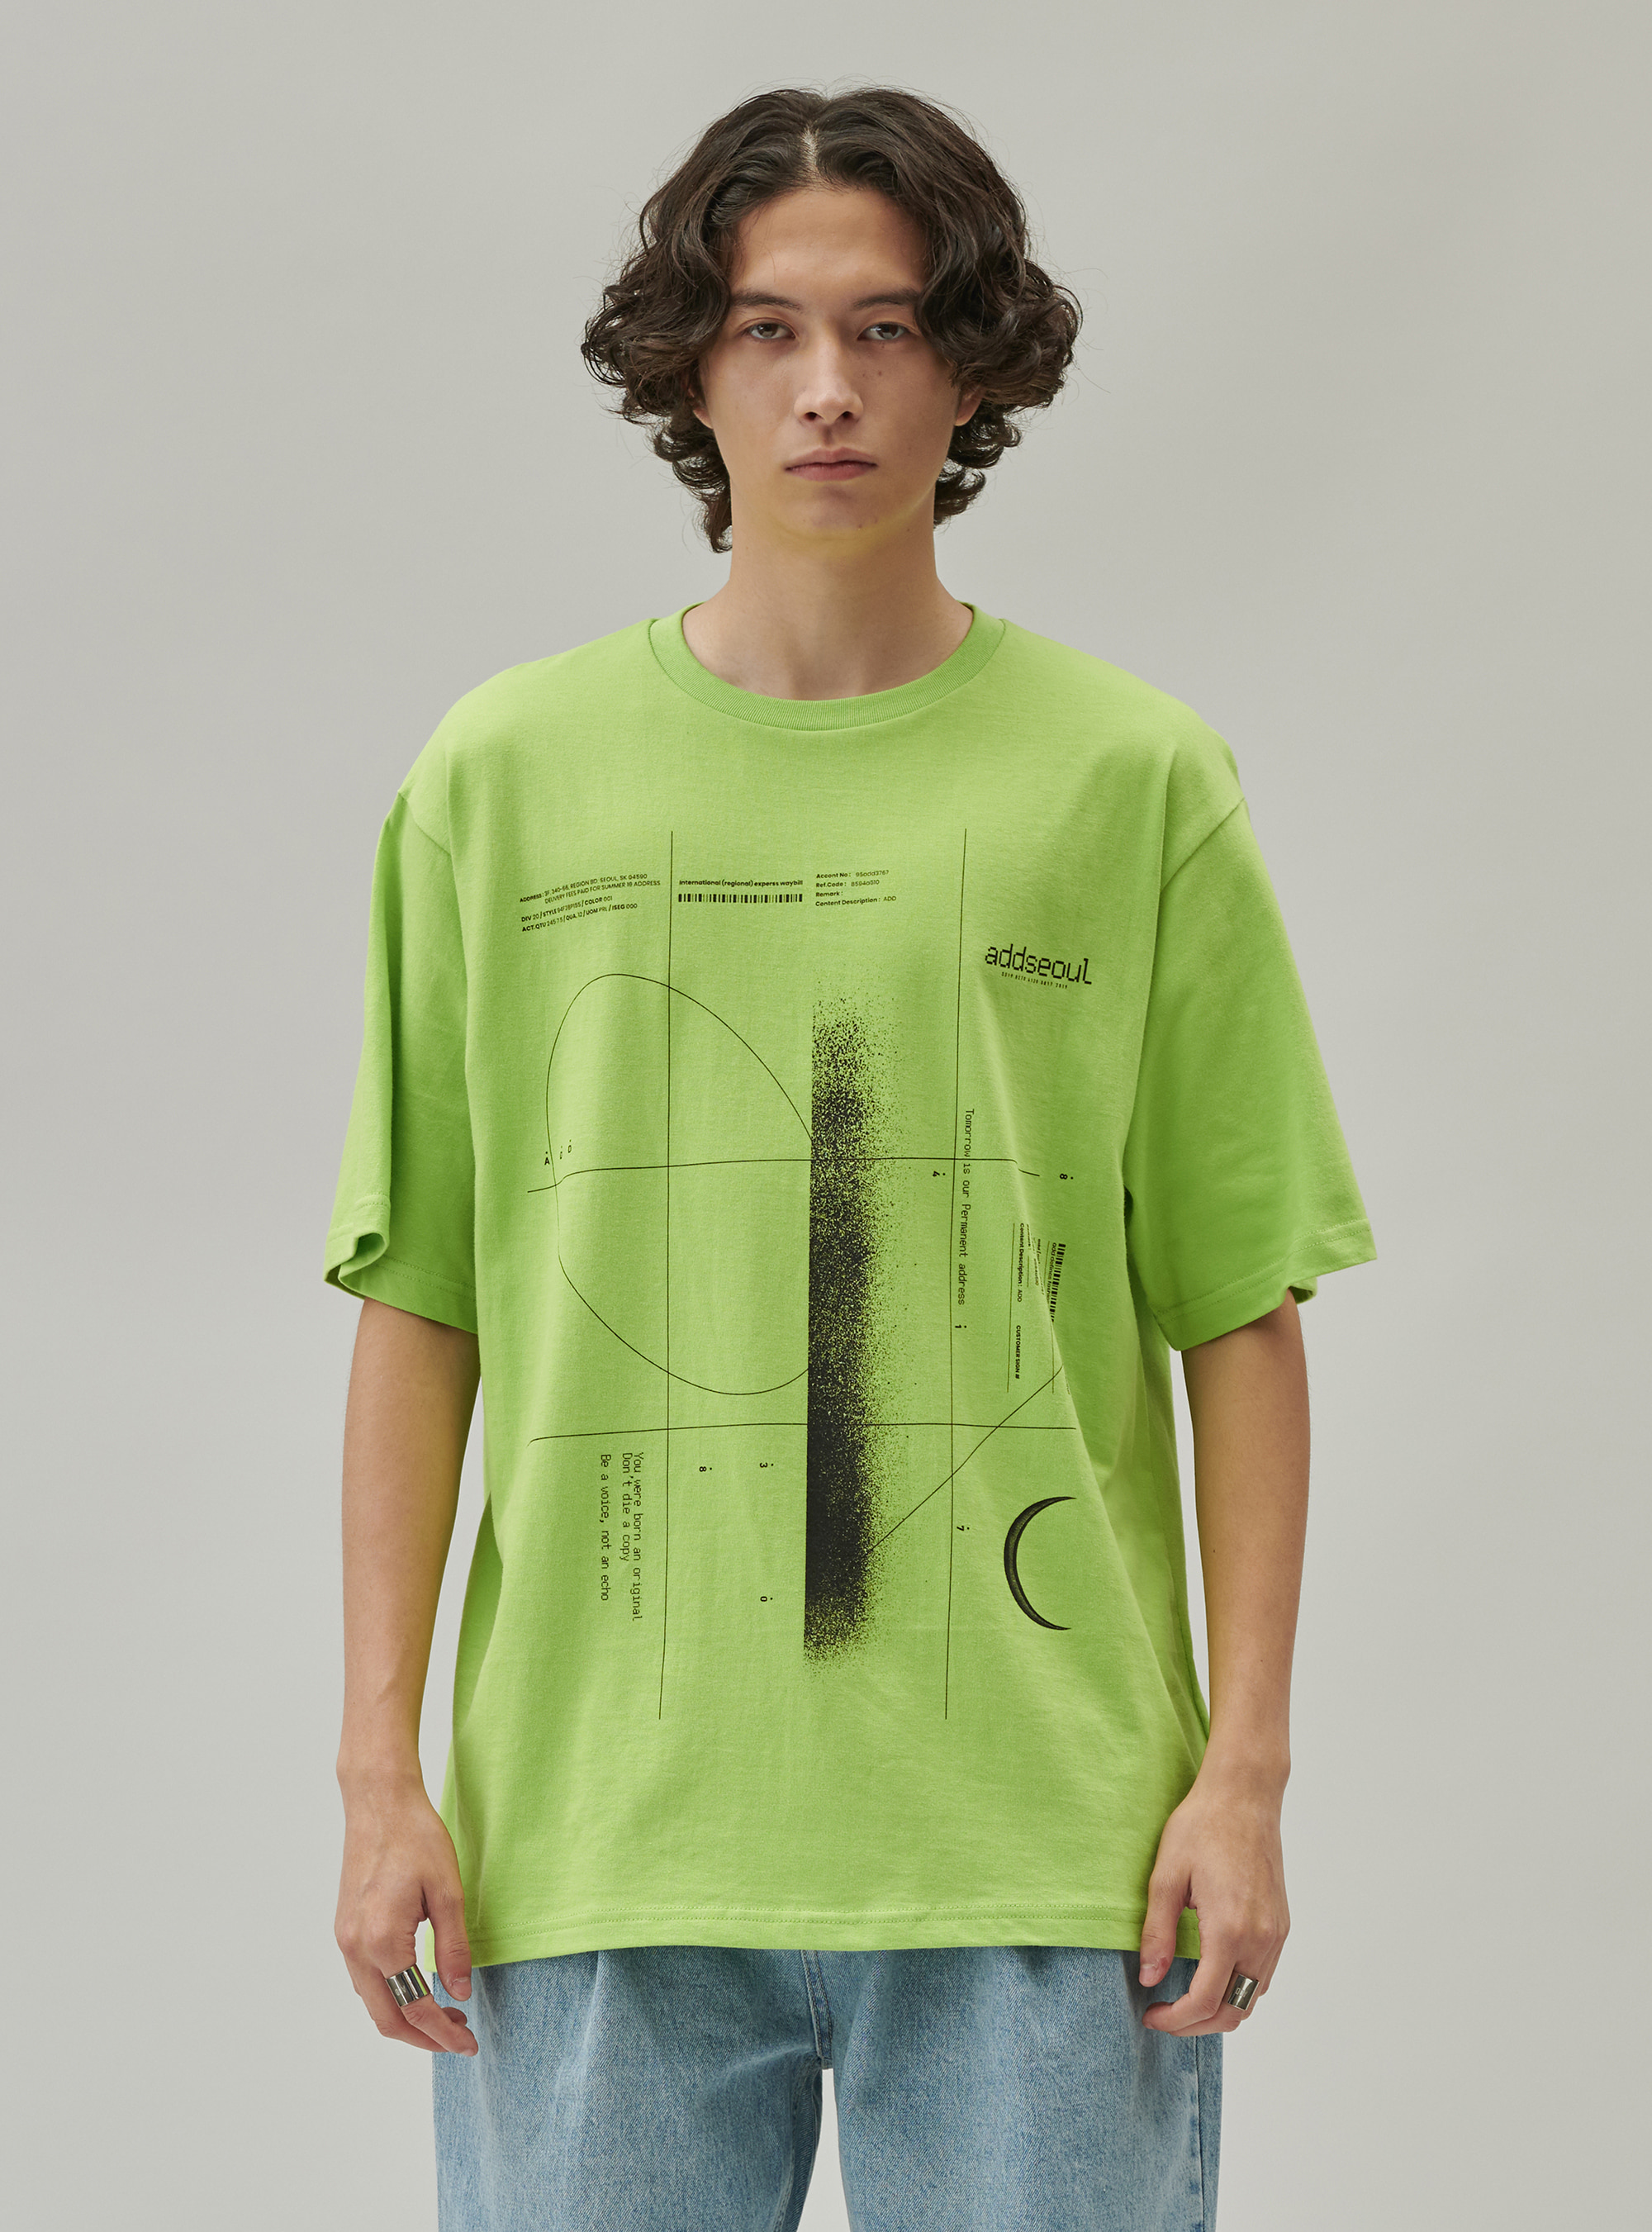 ADD SPACE A TEE LIME